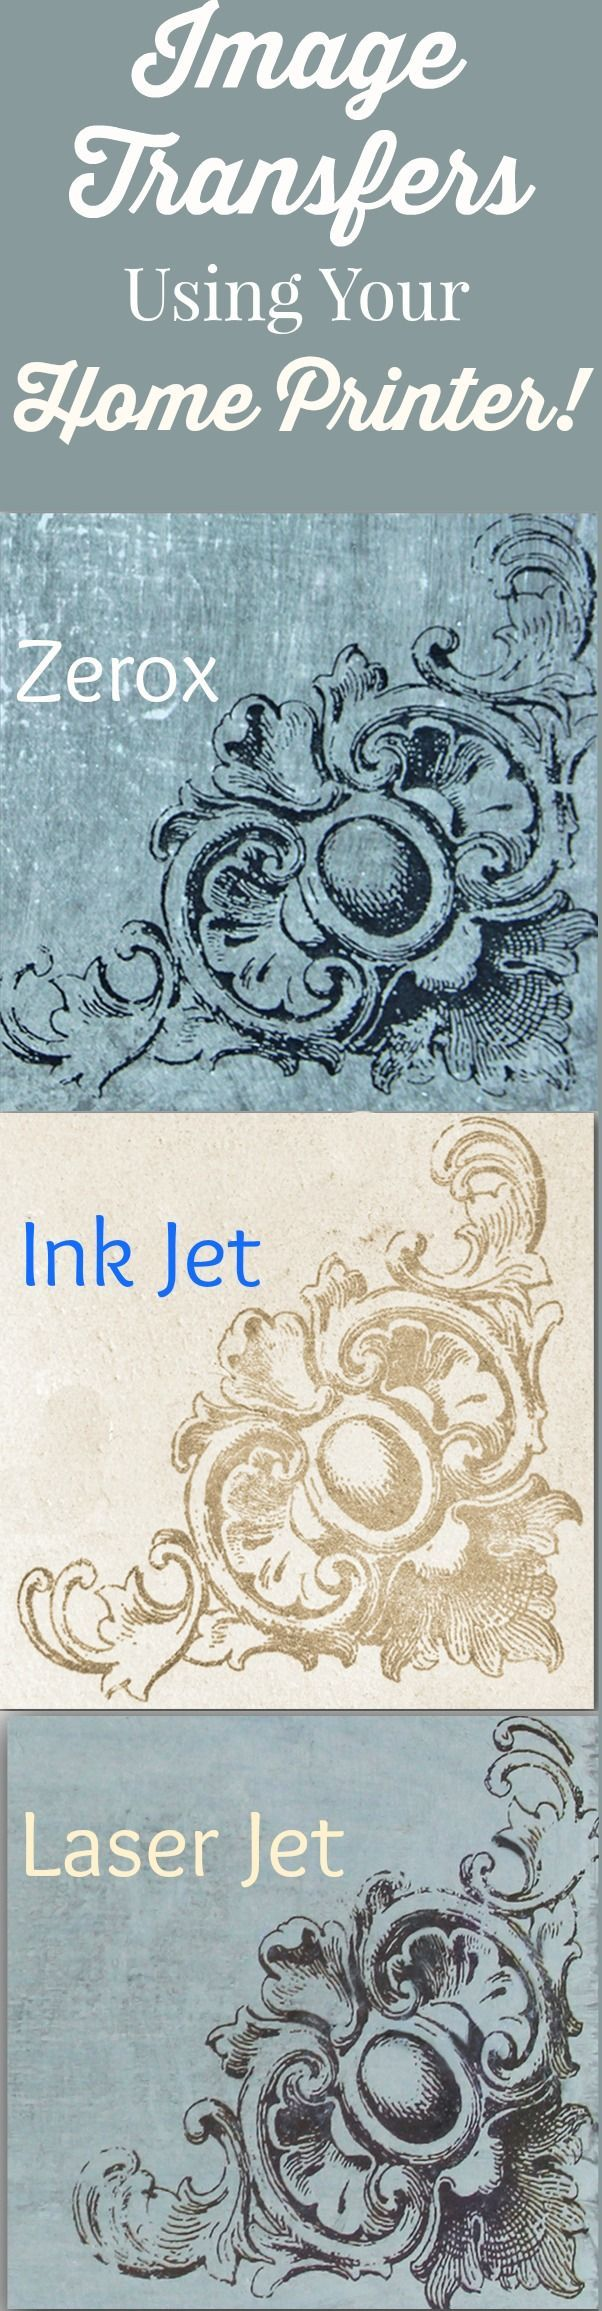 How to Transfer Images with Inkjet Printers! The Graphics Fairy. So nice to finally find a crafts technique for transferring images using a Home Printer! Great for DIY Home Decor Projects!